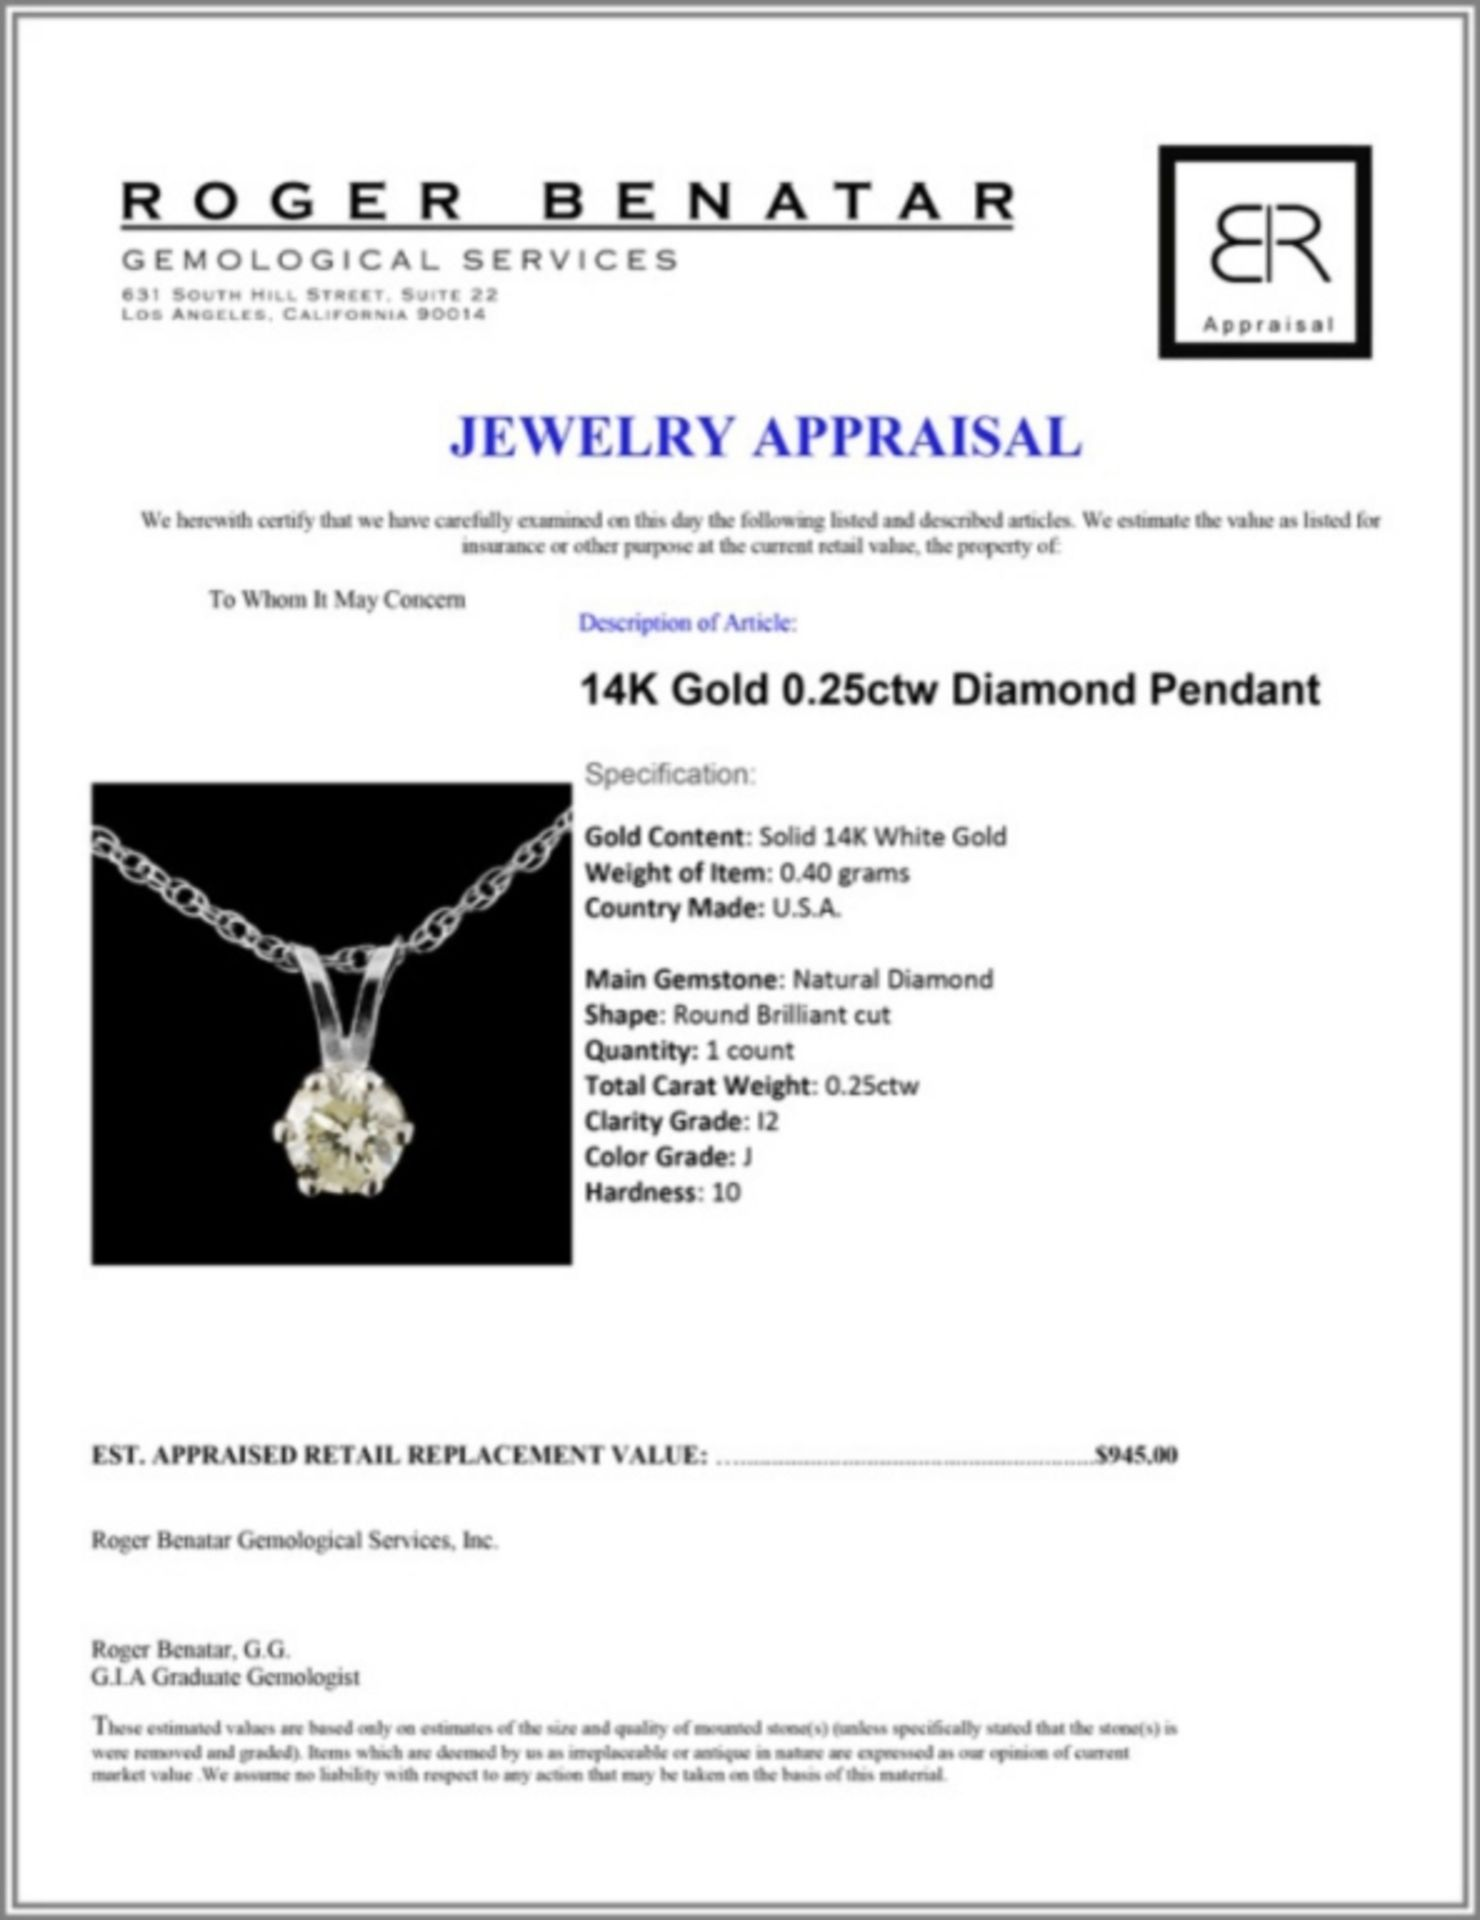 14K Gold 0.25ctw Diamond Pendant - Image 3 of 3